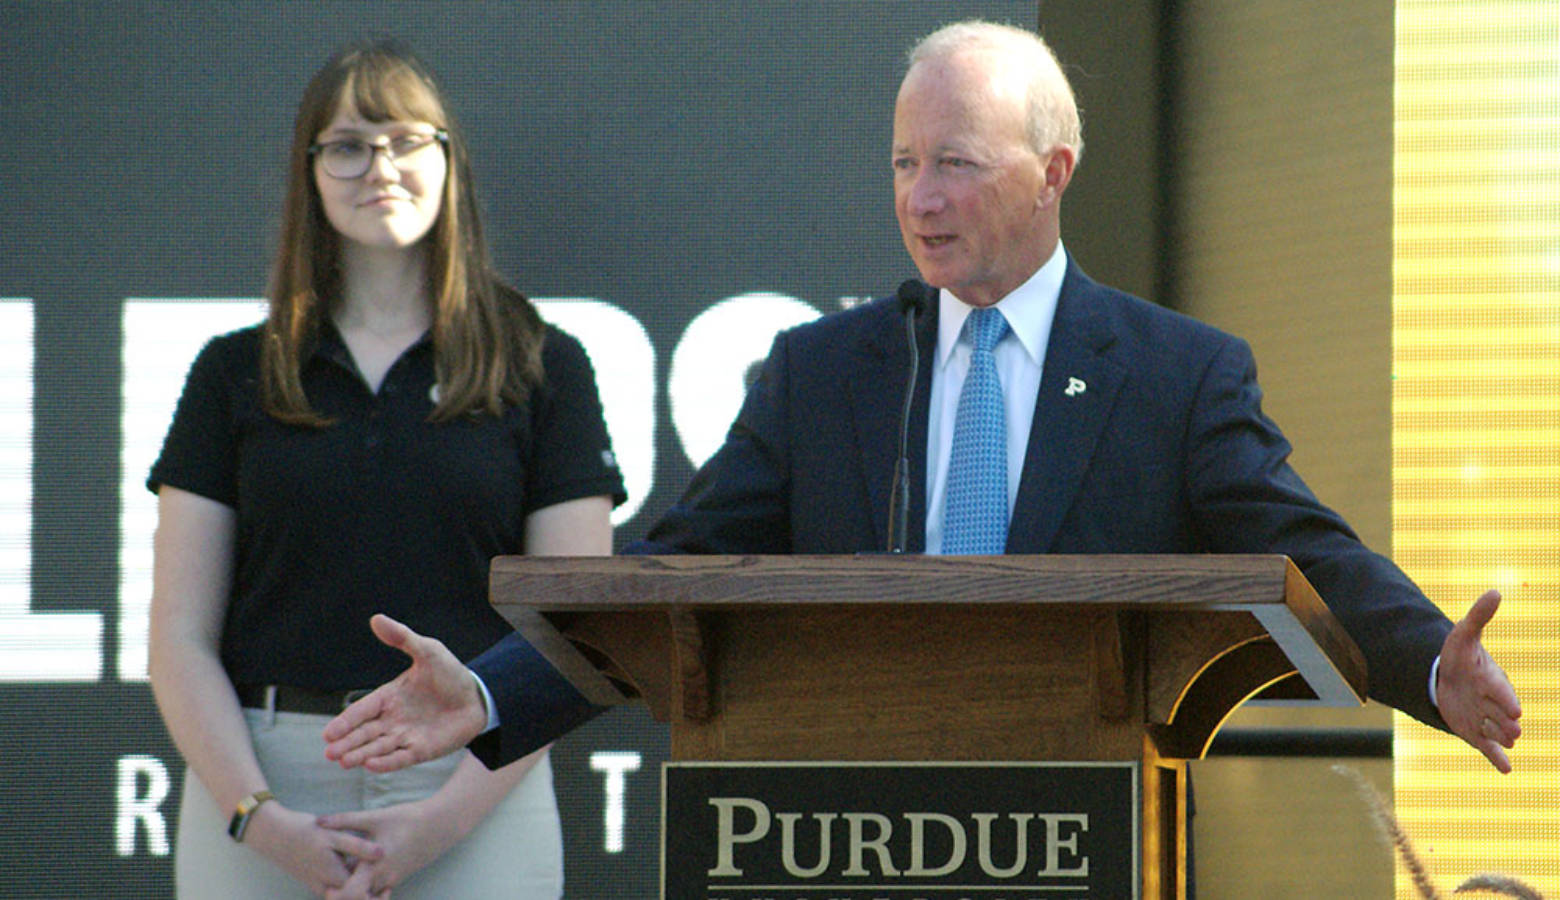 Purdue President Mitch Daniels, with senior Michaela Rumple standing to his left, tells attendees what the new Engineering and Polytechnic Gateway Complex will mean for students and businesses. (Samantha Horton/IPB News)